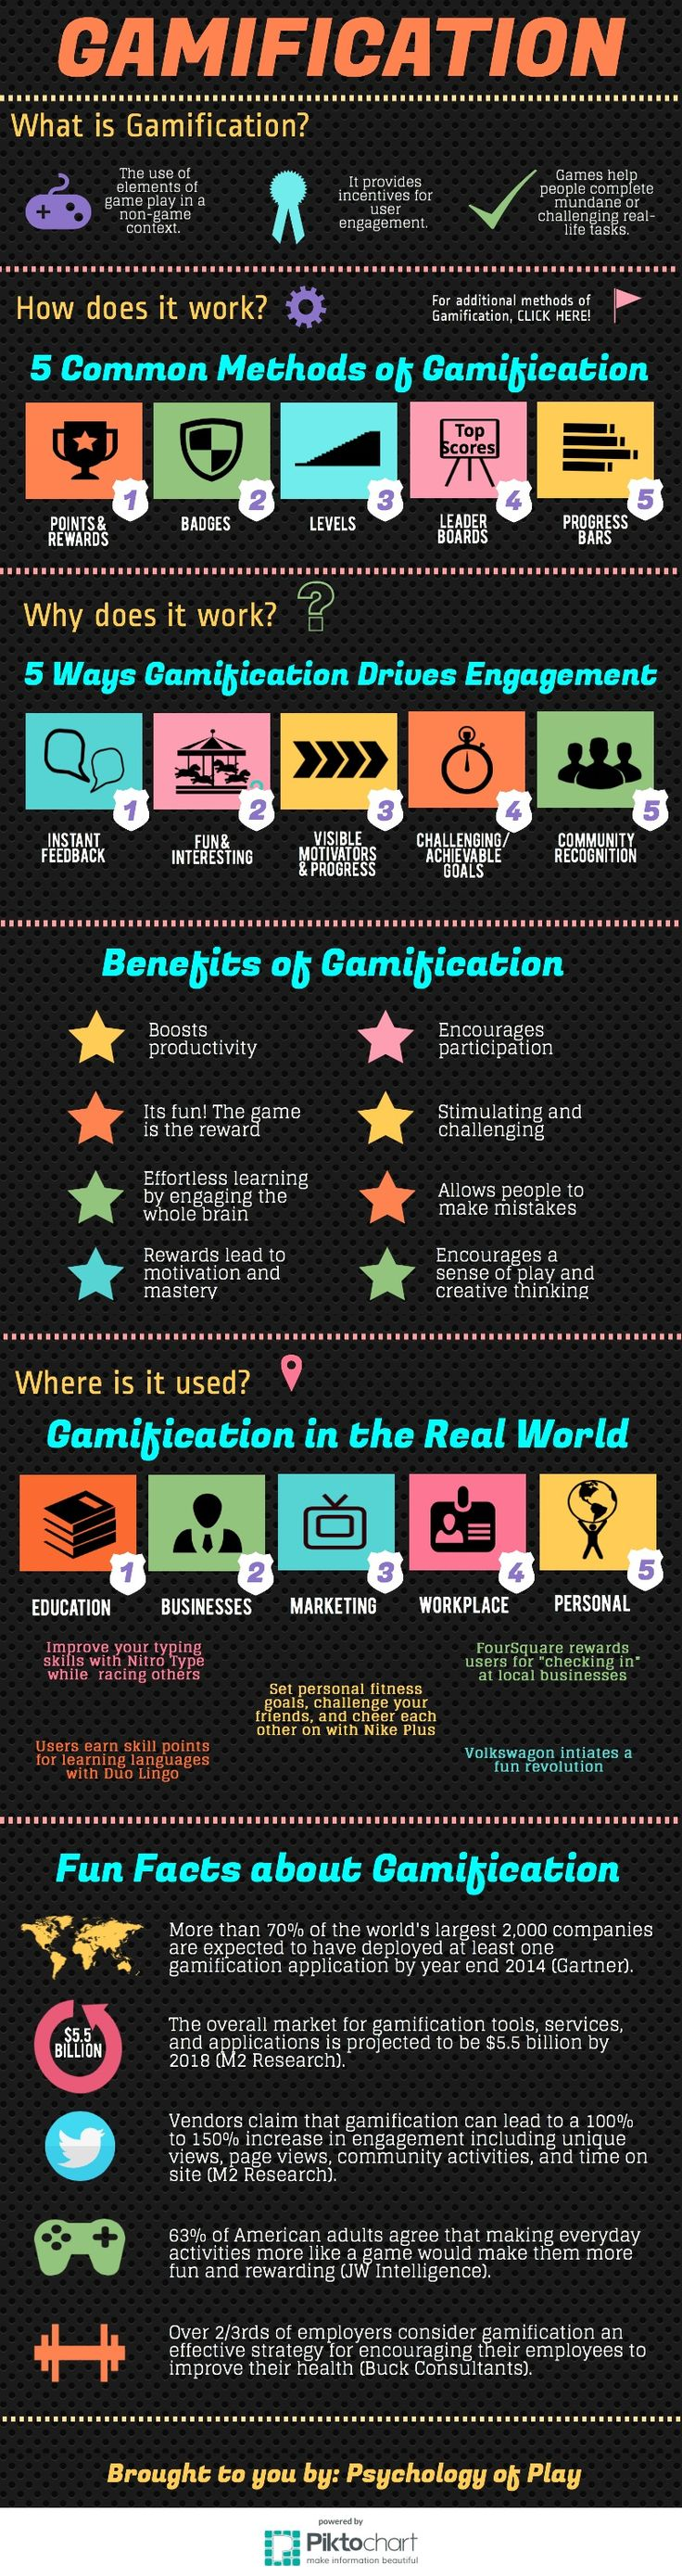 Gamification | Piktochart Infographic Editor